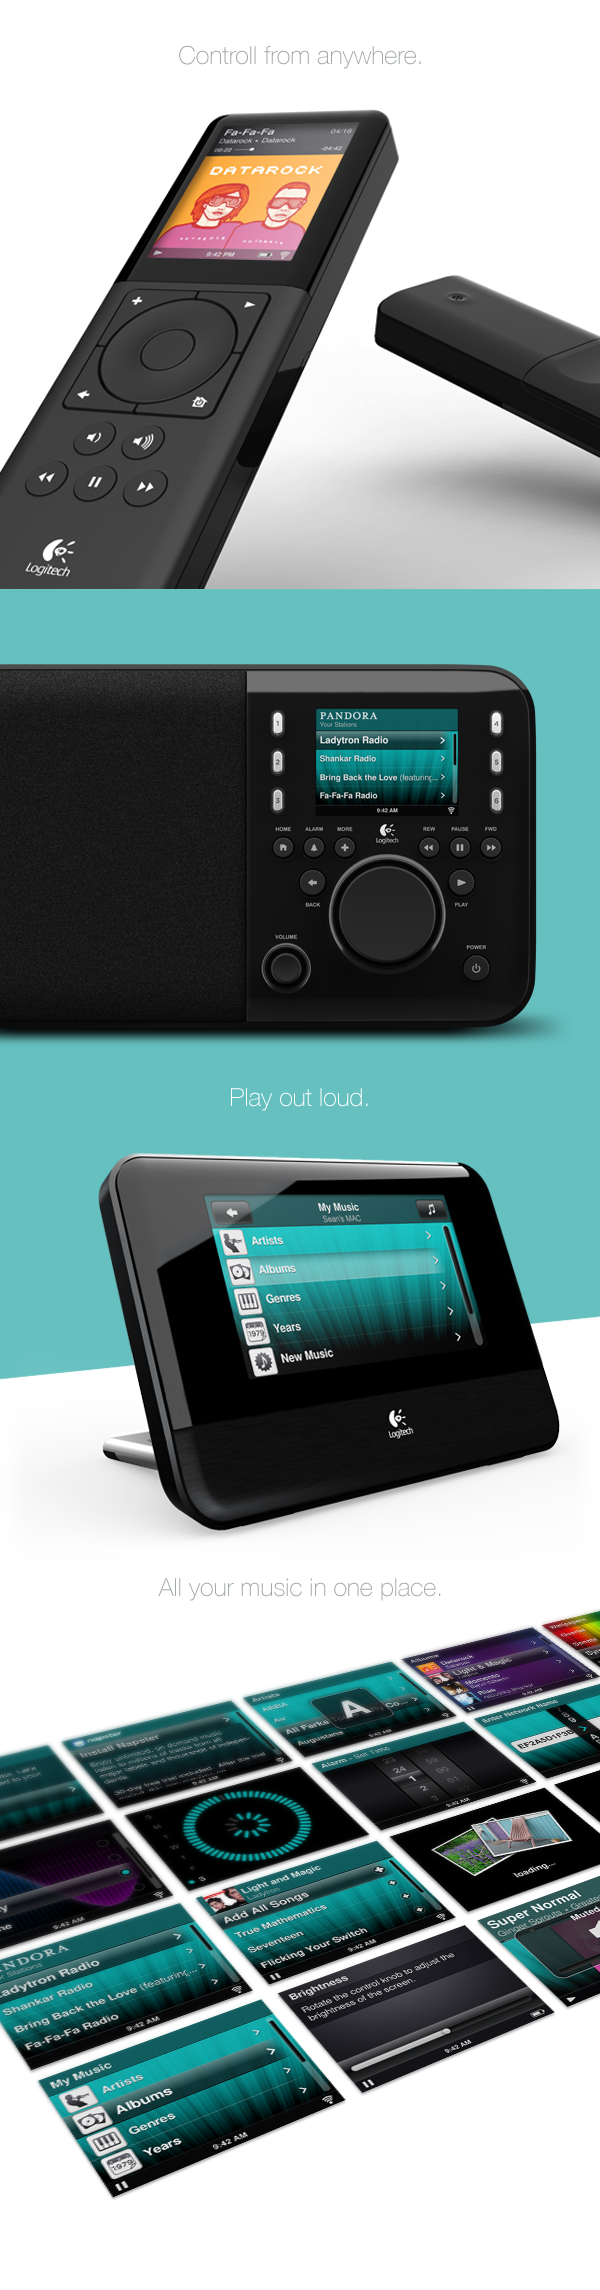 interaction design UI visual design ecosystem wireless brand ux application product touch